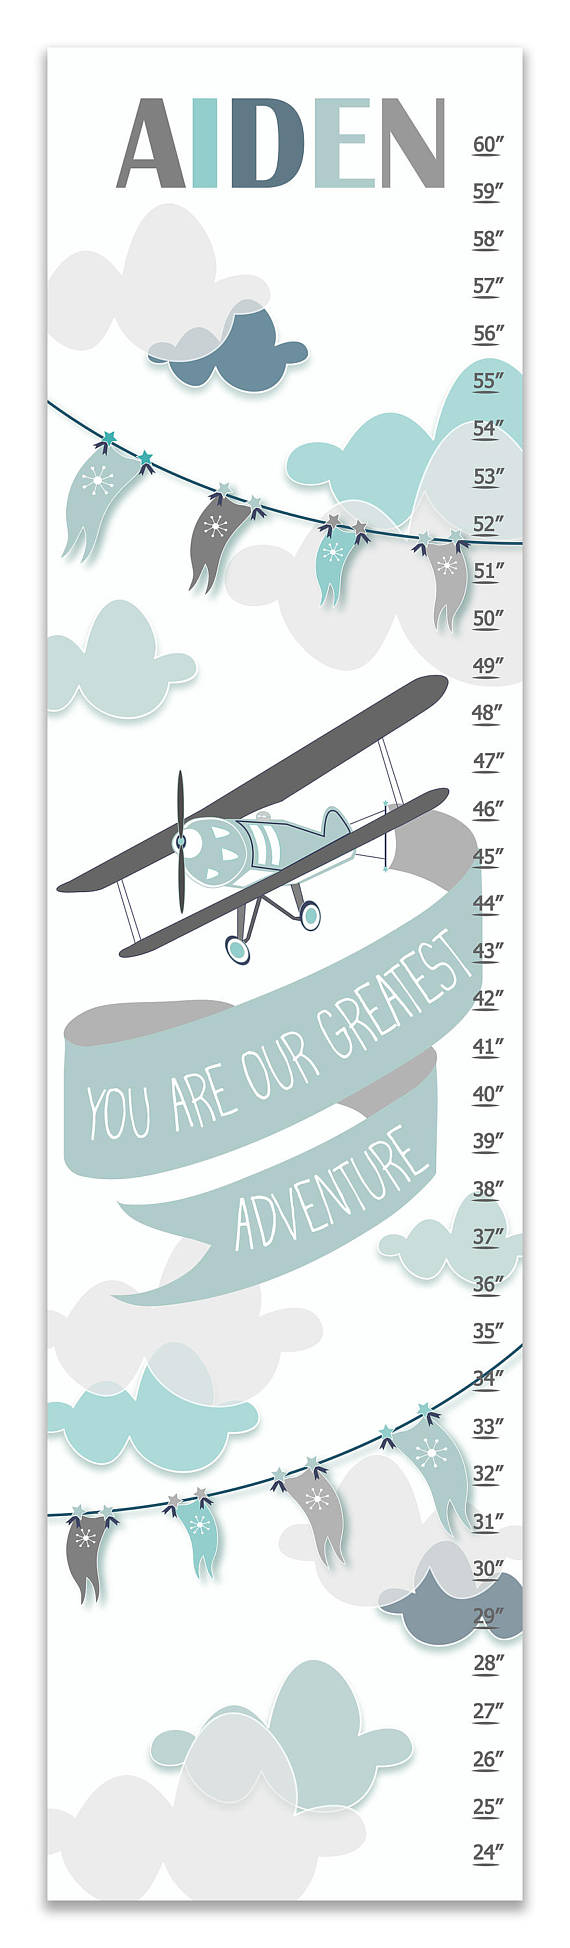 Growth chart for baby boys images free any chart examples airplane adventure personalized growth chart airplane adventure personalized growth chart baby boy gifts gifts for nursery nvjuhfo Images